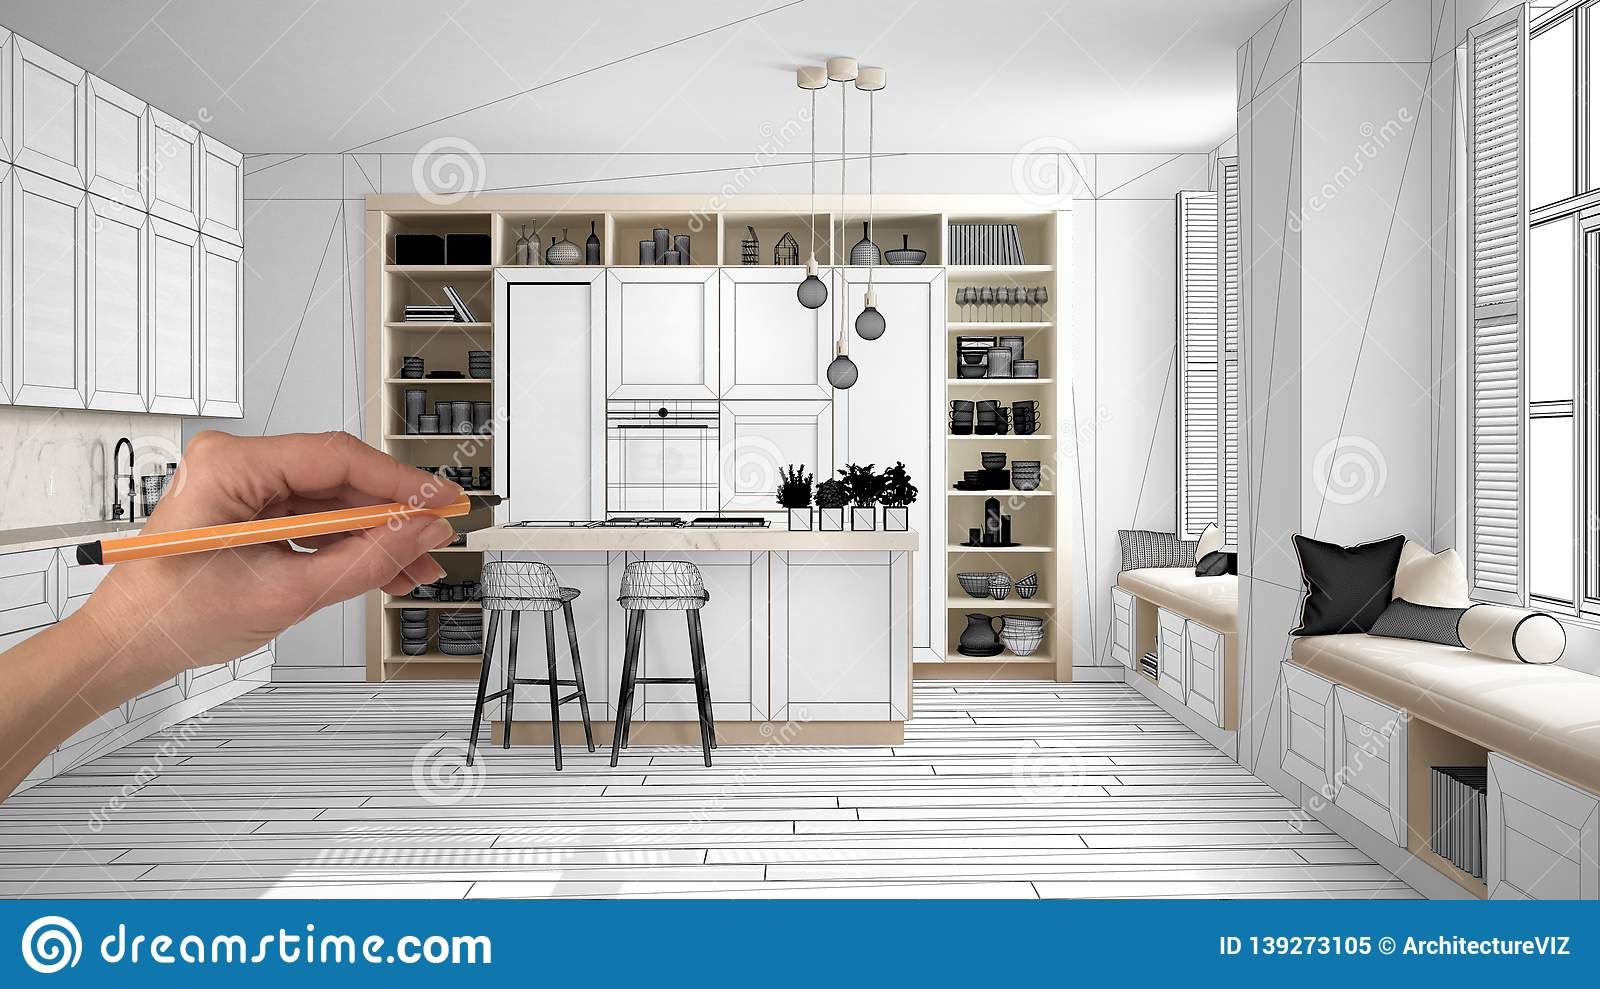 Unfinished Project Under Construction Draft Concept Interior Design Sketch Hand Drawing Real Kitchen Sketch With Blueprint Stock Illustration Illustration Of Materials Empty 139273105